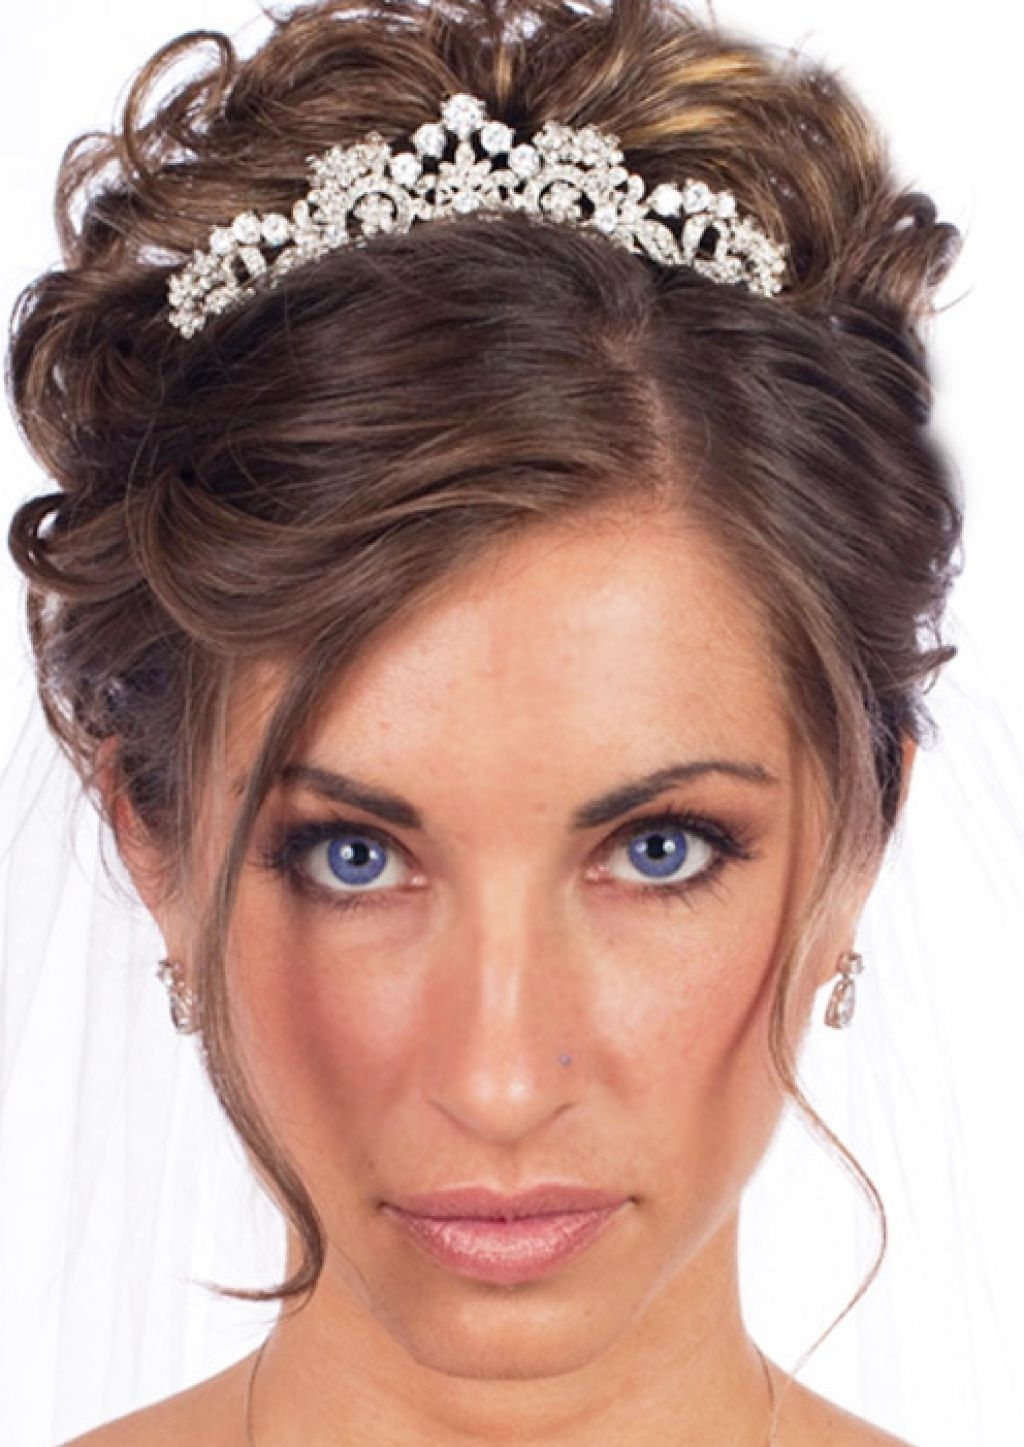 Wedding Updos With Veil Hairstyle – Girly Hairstyle Inspiration Throughout Popular Wedding Hairstyles For Long Hair With Veils And Tiaras (View 13 of 15)